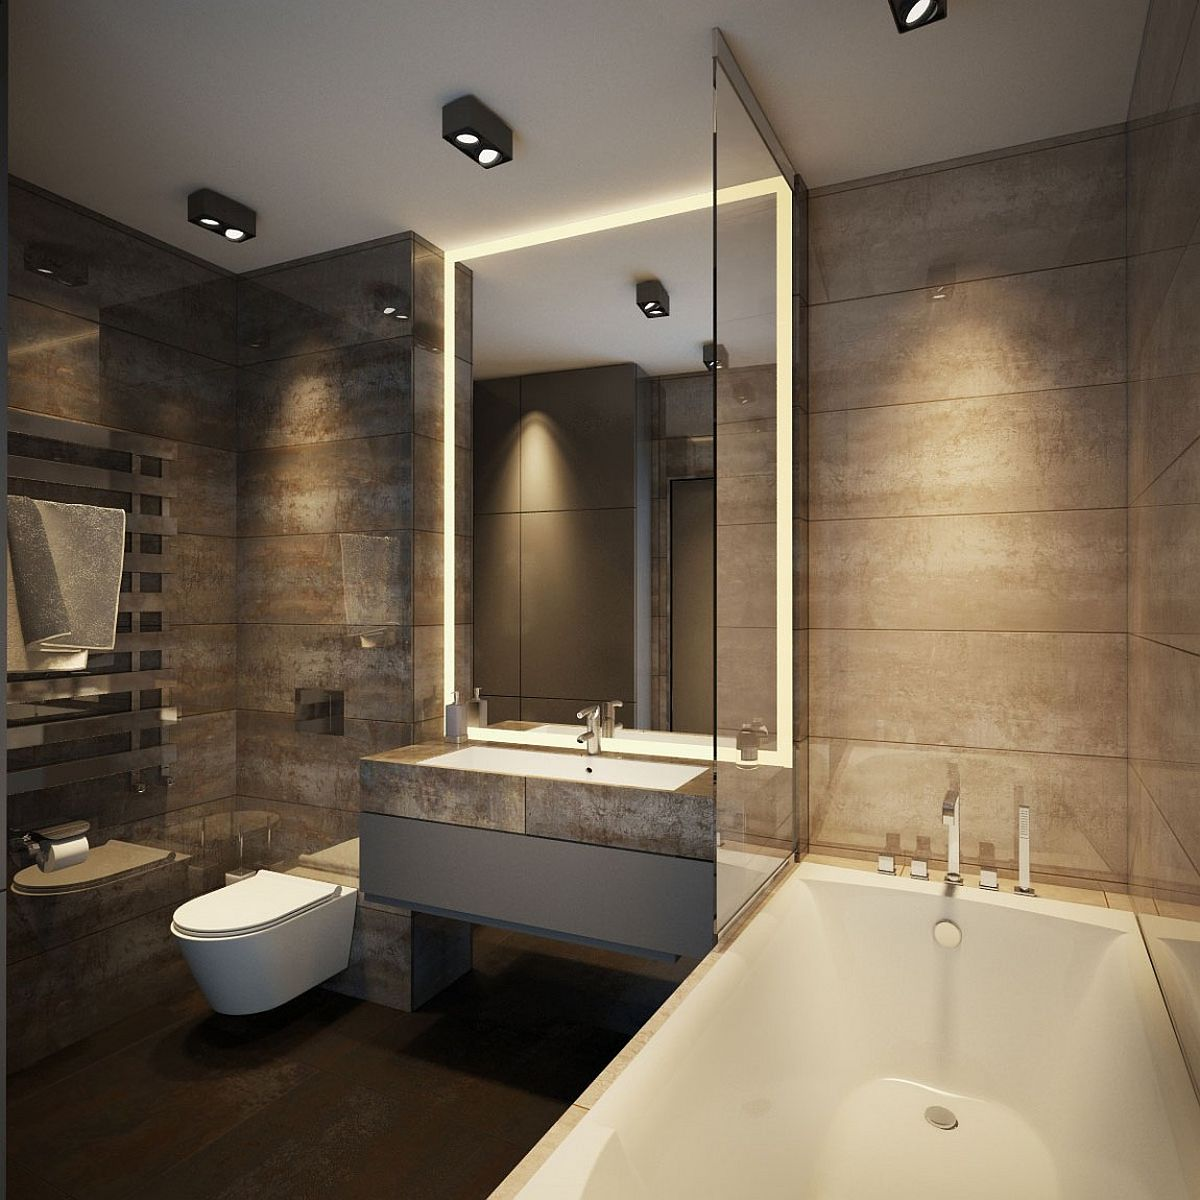 Apartment Bathroom Remodel Ideas: Apartment Ernst In Kiev: Inspired By Posh Hotel Ambiance